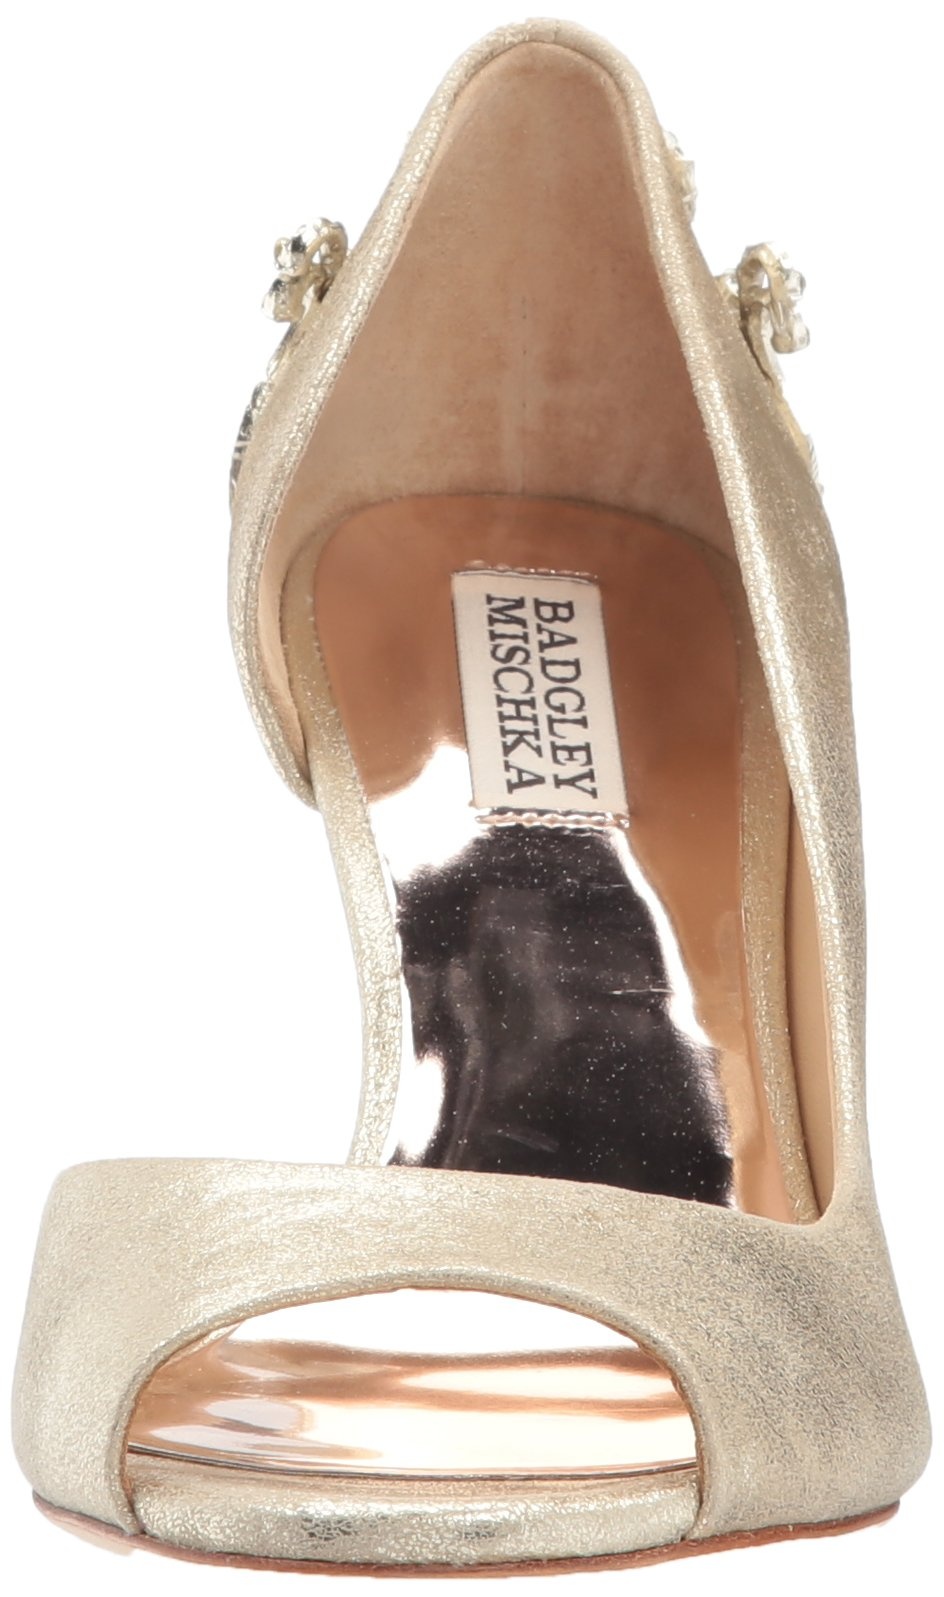 Badgley Mischka Women's Meagan II Pump, platino_929, 7 M US by Badgley Mischka (Image #4)